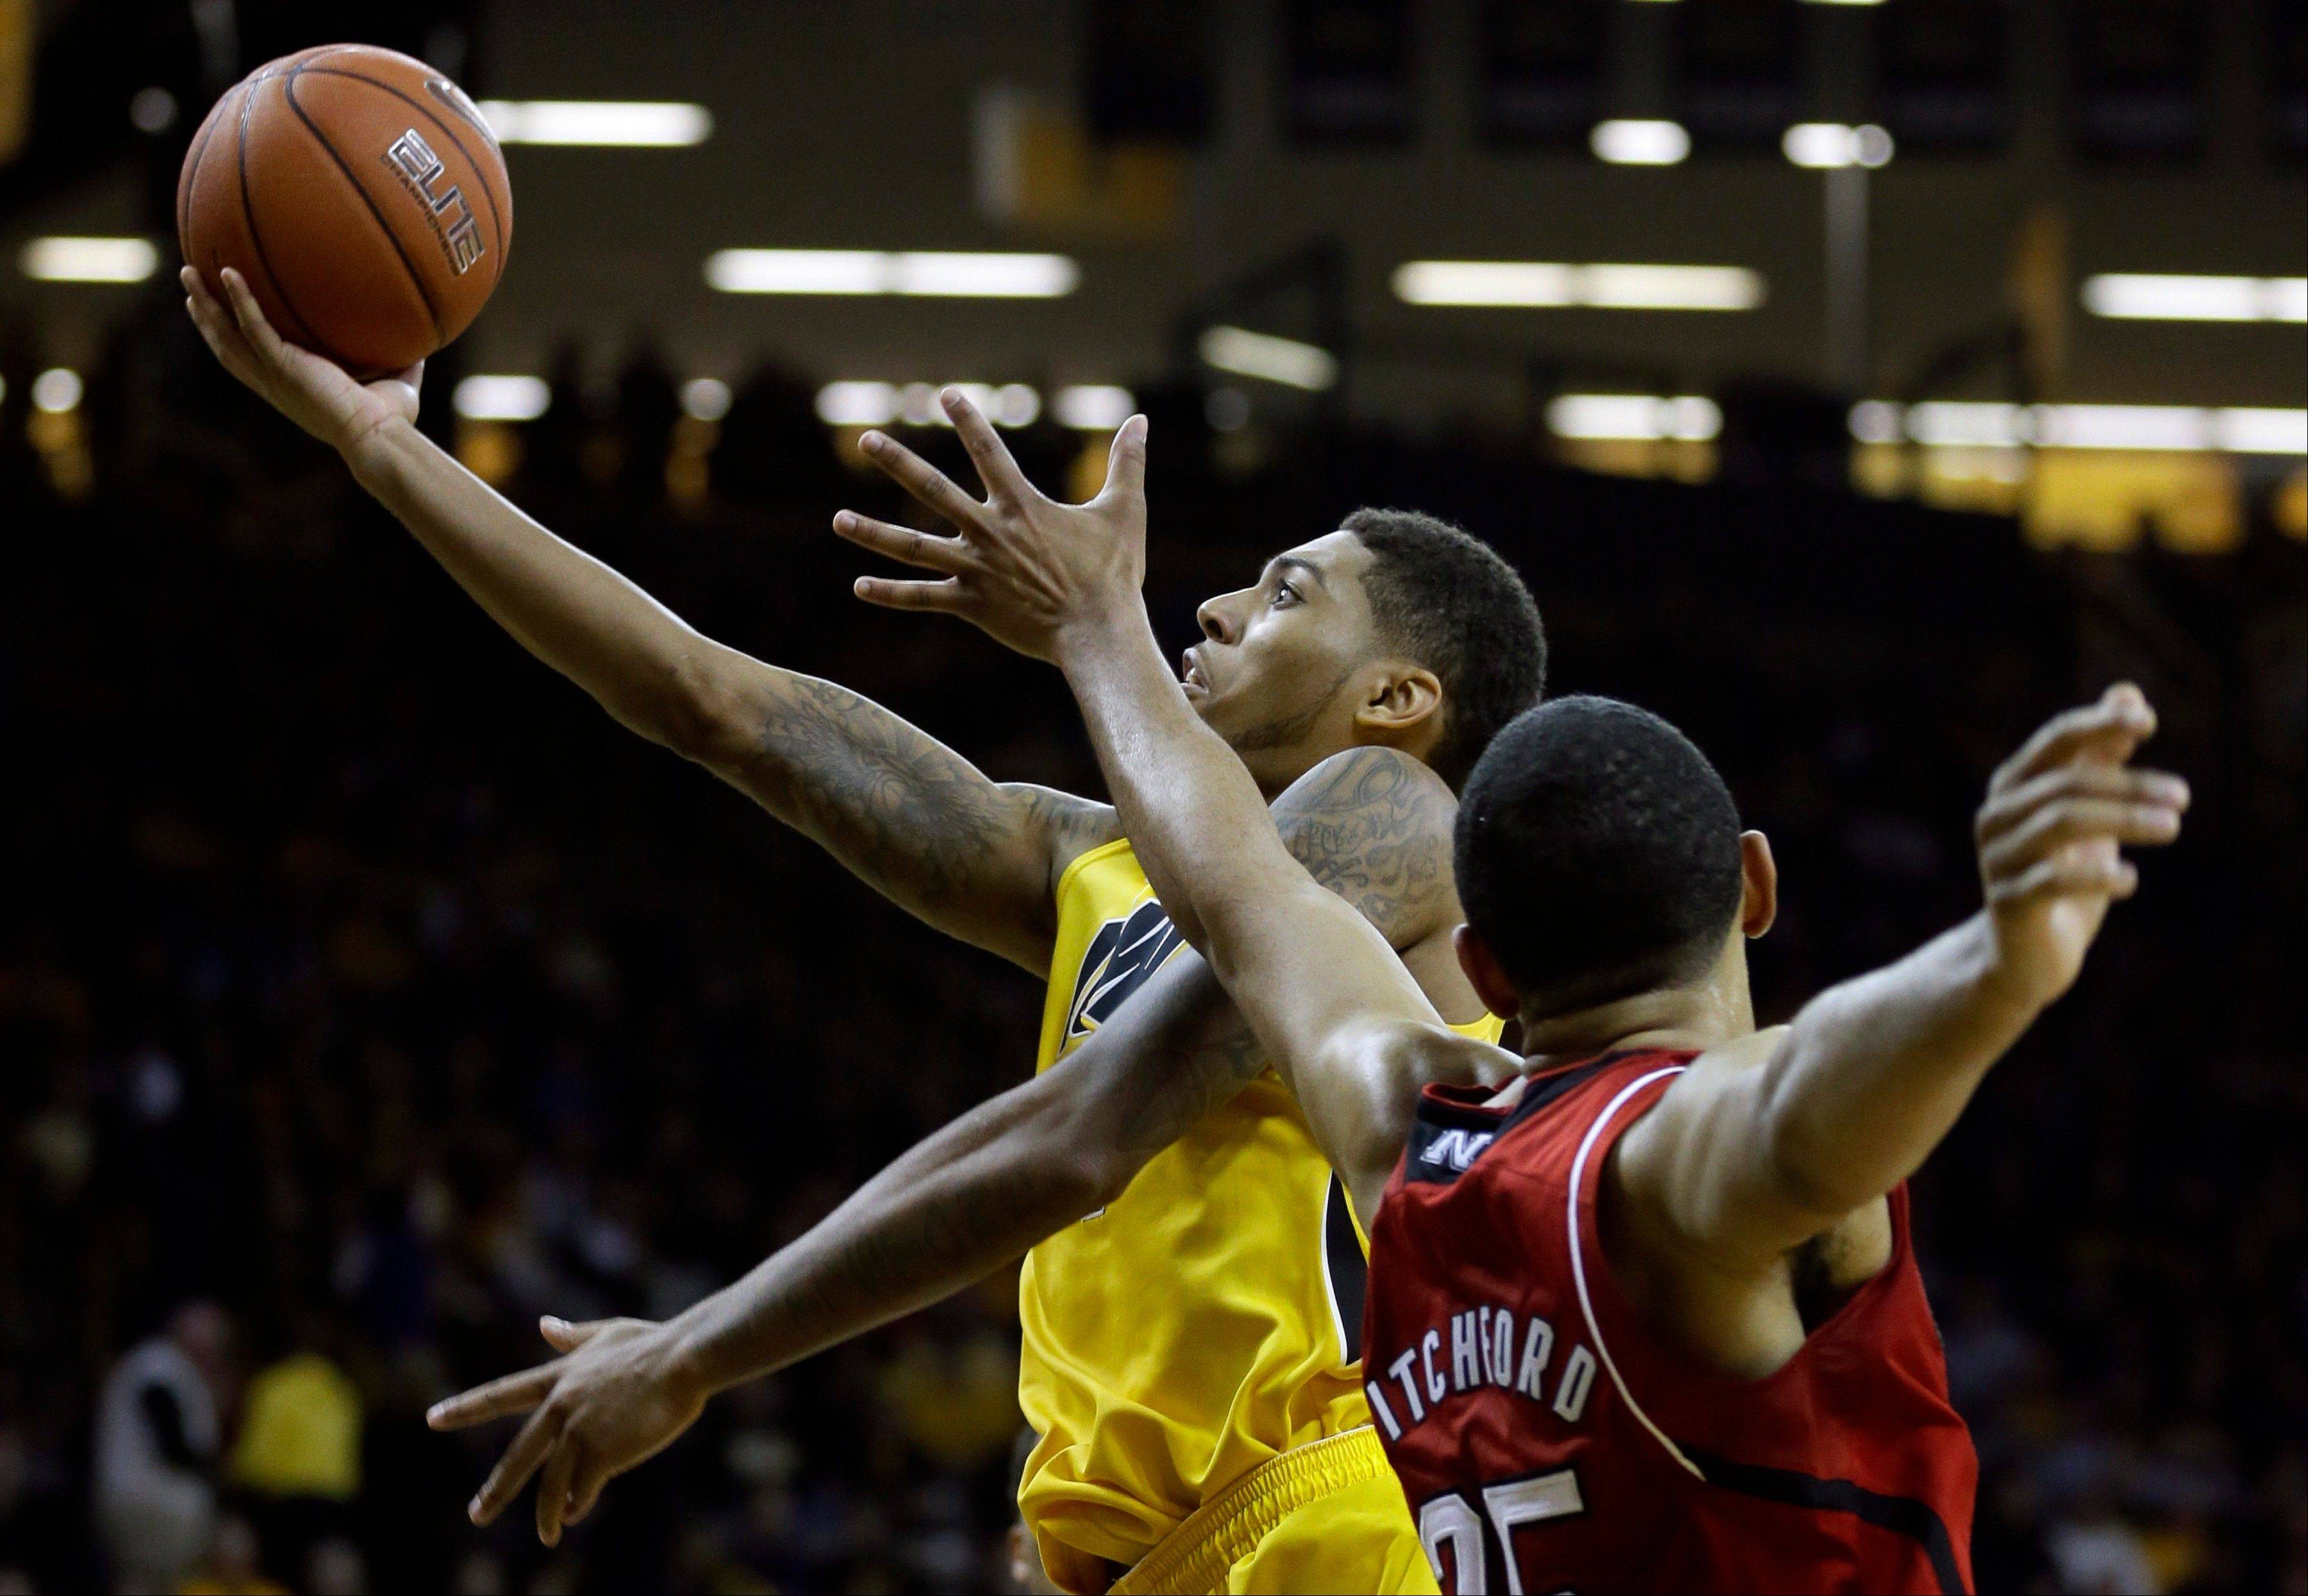 Iowa guard Devyn Marble drives to the basket past Nebraska forward Walter Pitchford during the second half of Tuesday�s game in Iowa City.